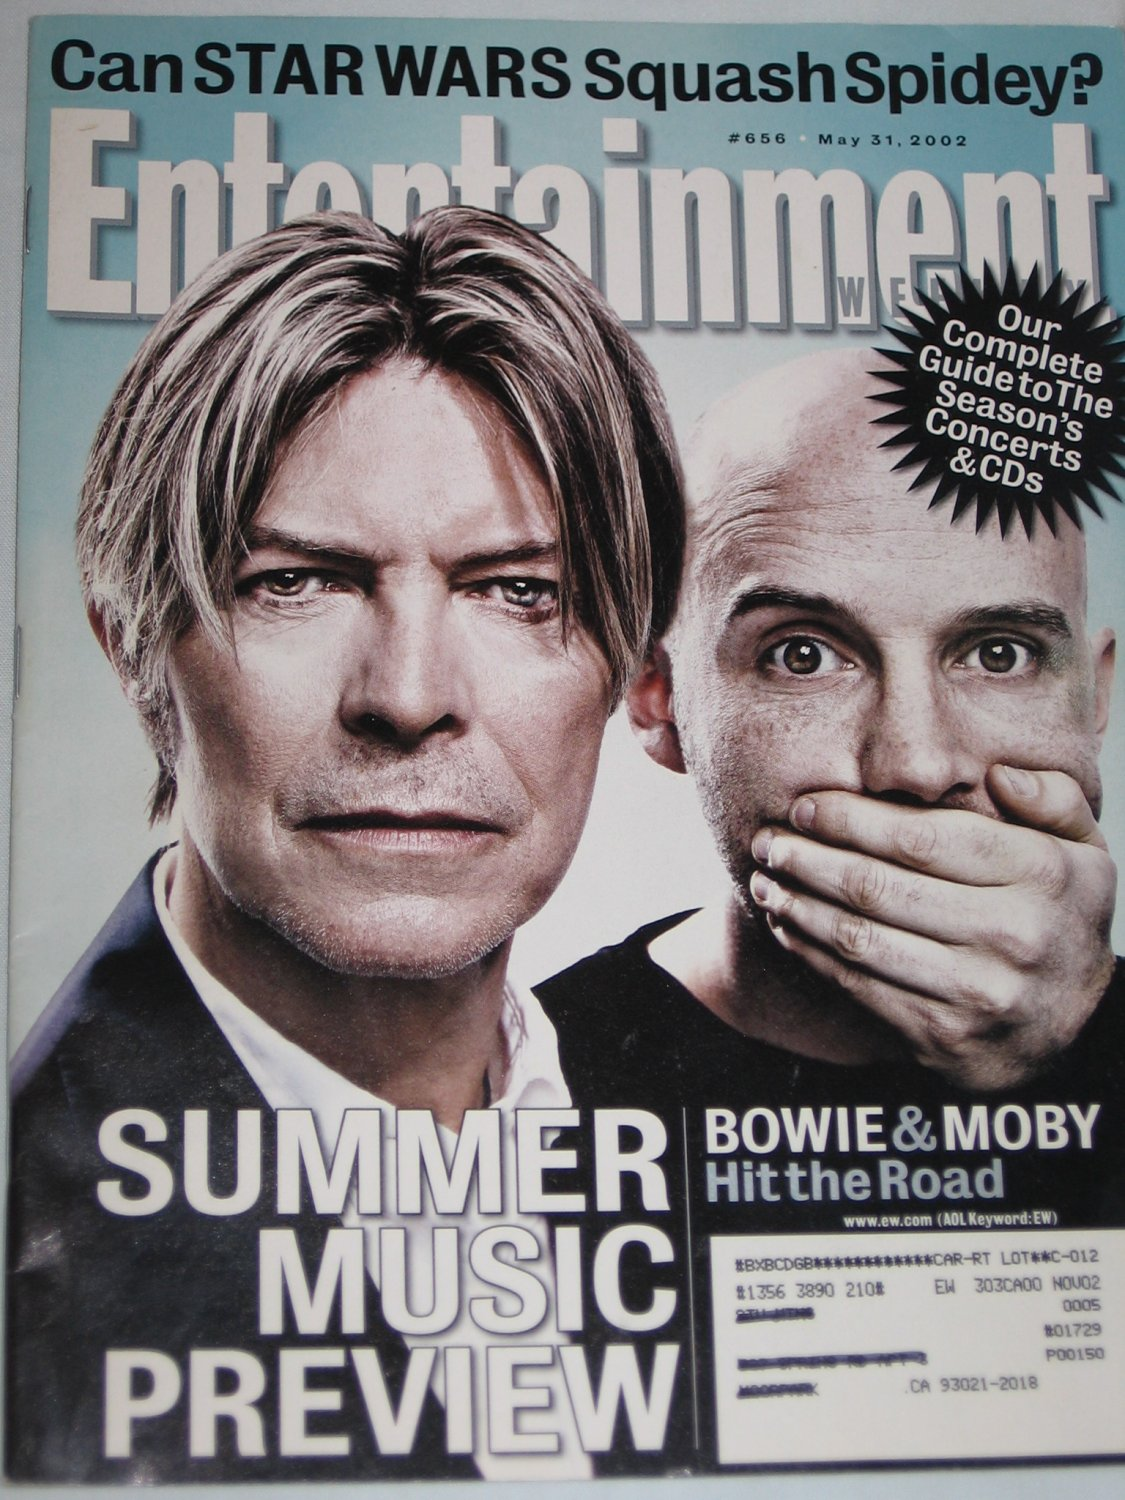 ENTERTAINMENT WEEKLY Magazine 656 David Bowie Moby Star Wars vs Spider-Man May 31 2002